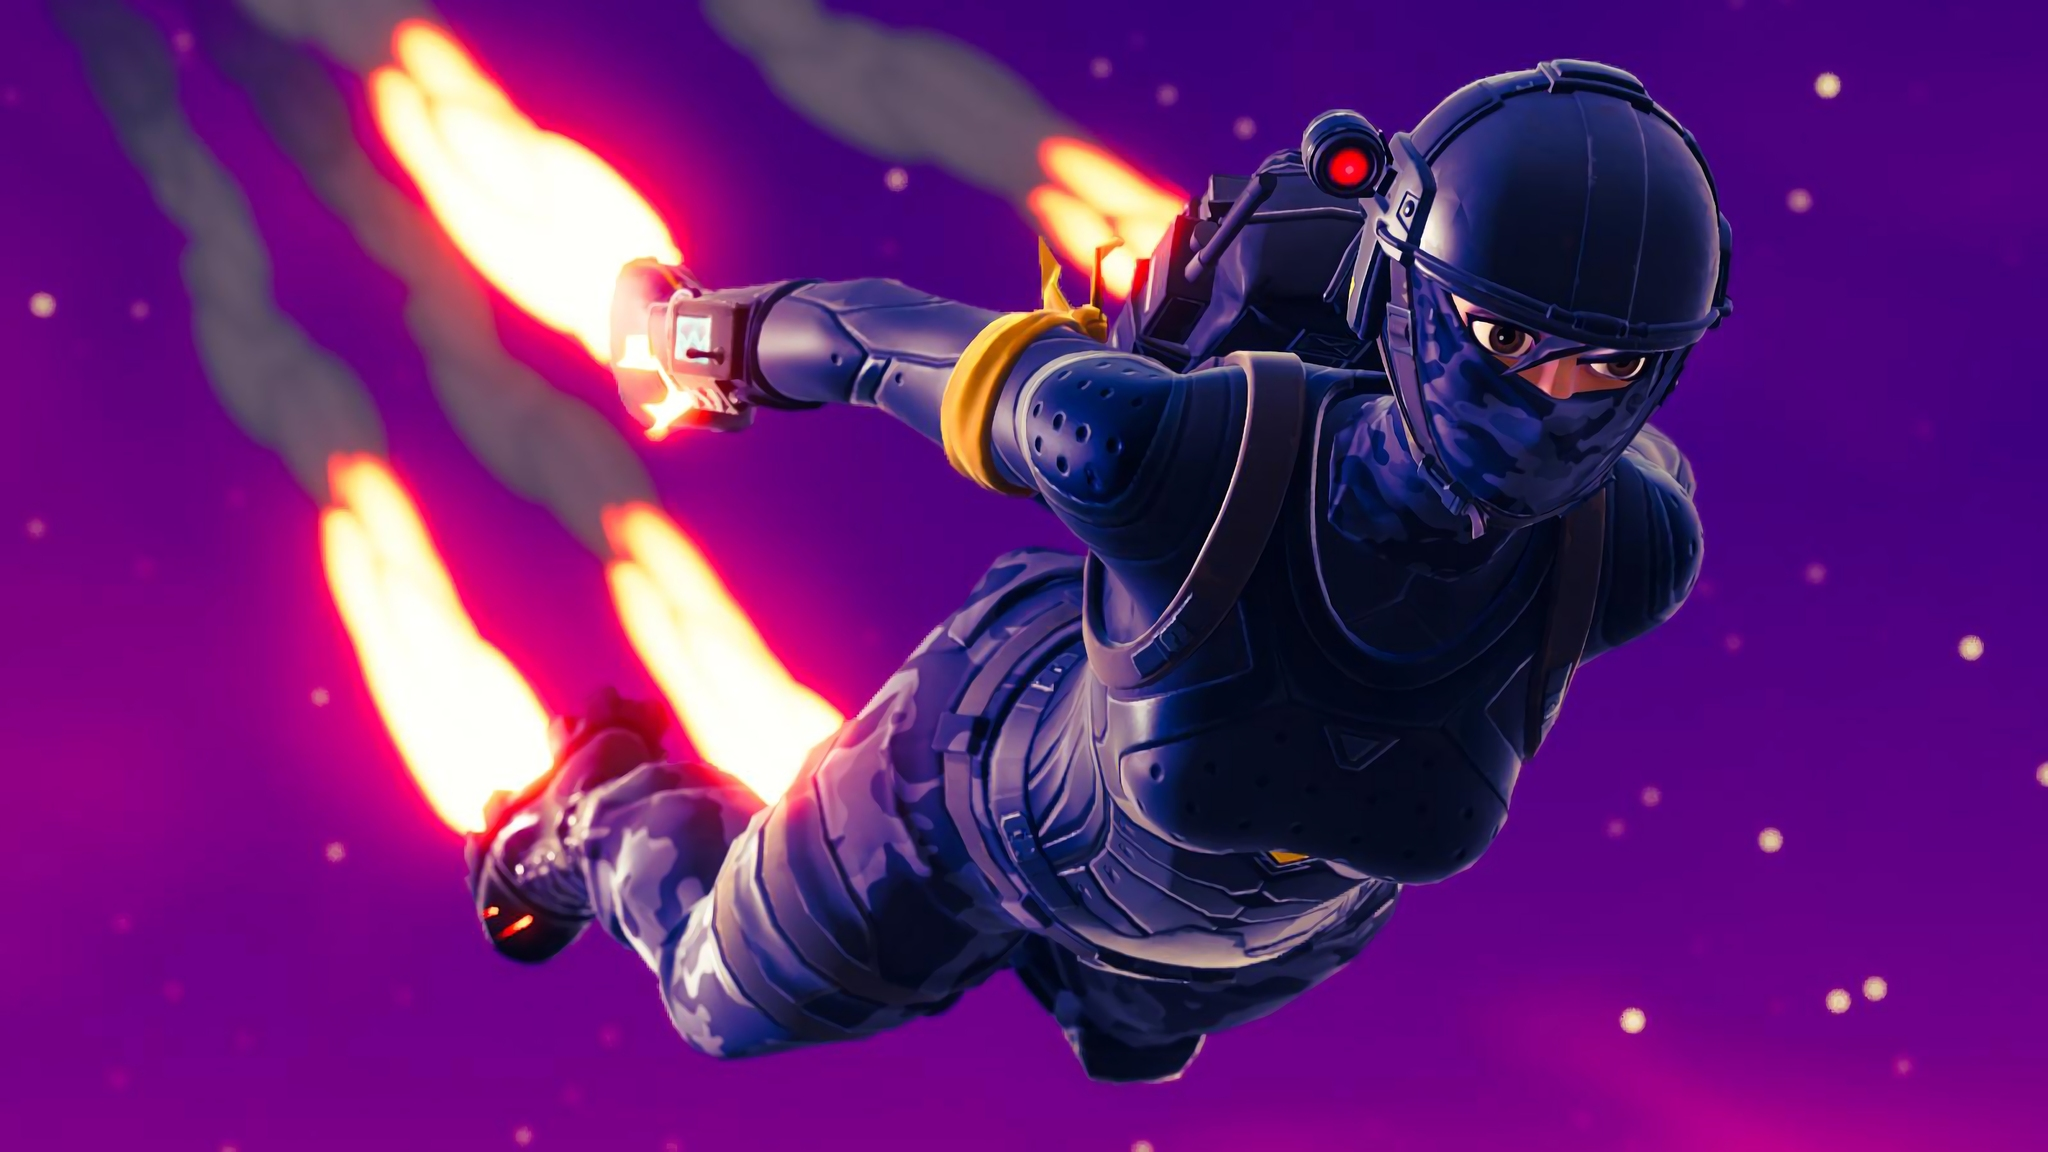 2048x1152 Elite Agent Skydive Fortnite Battle Royale